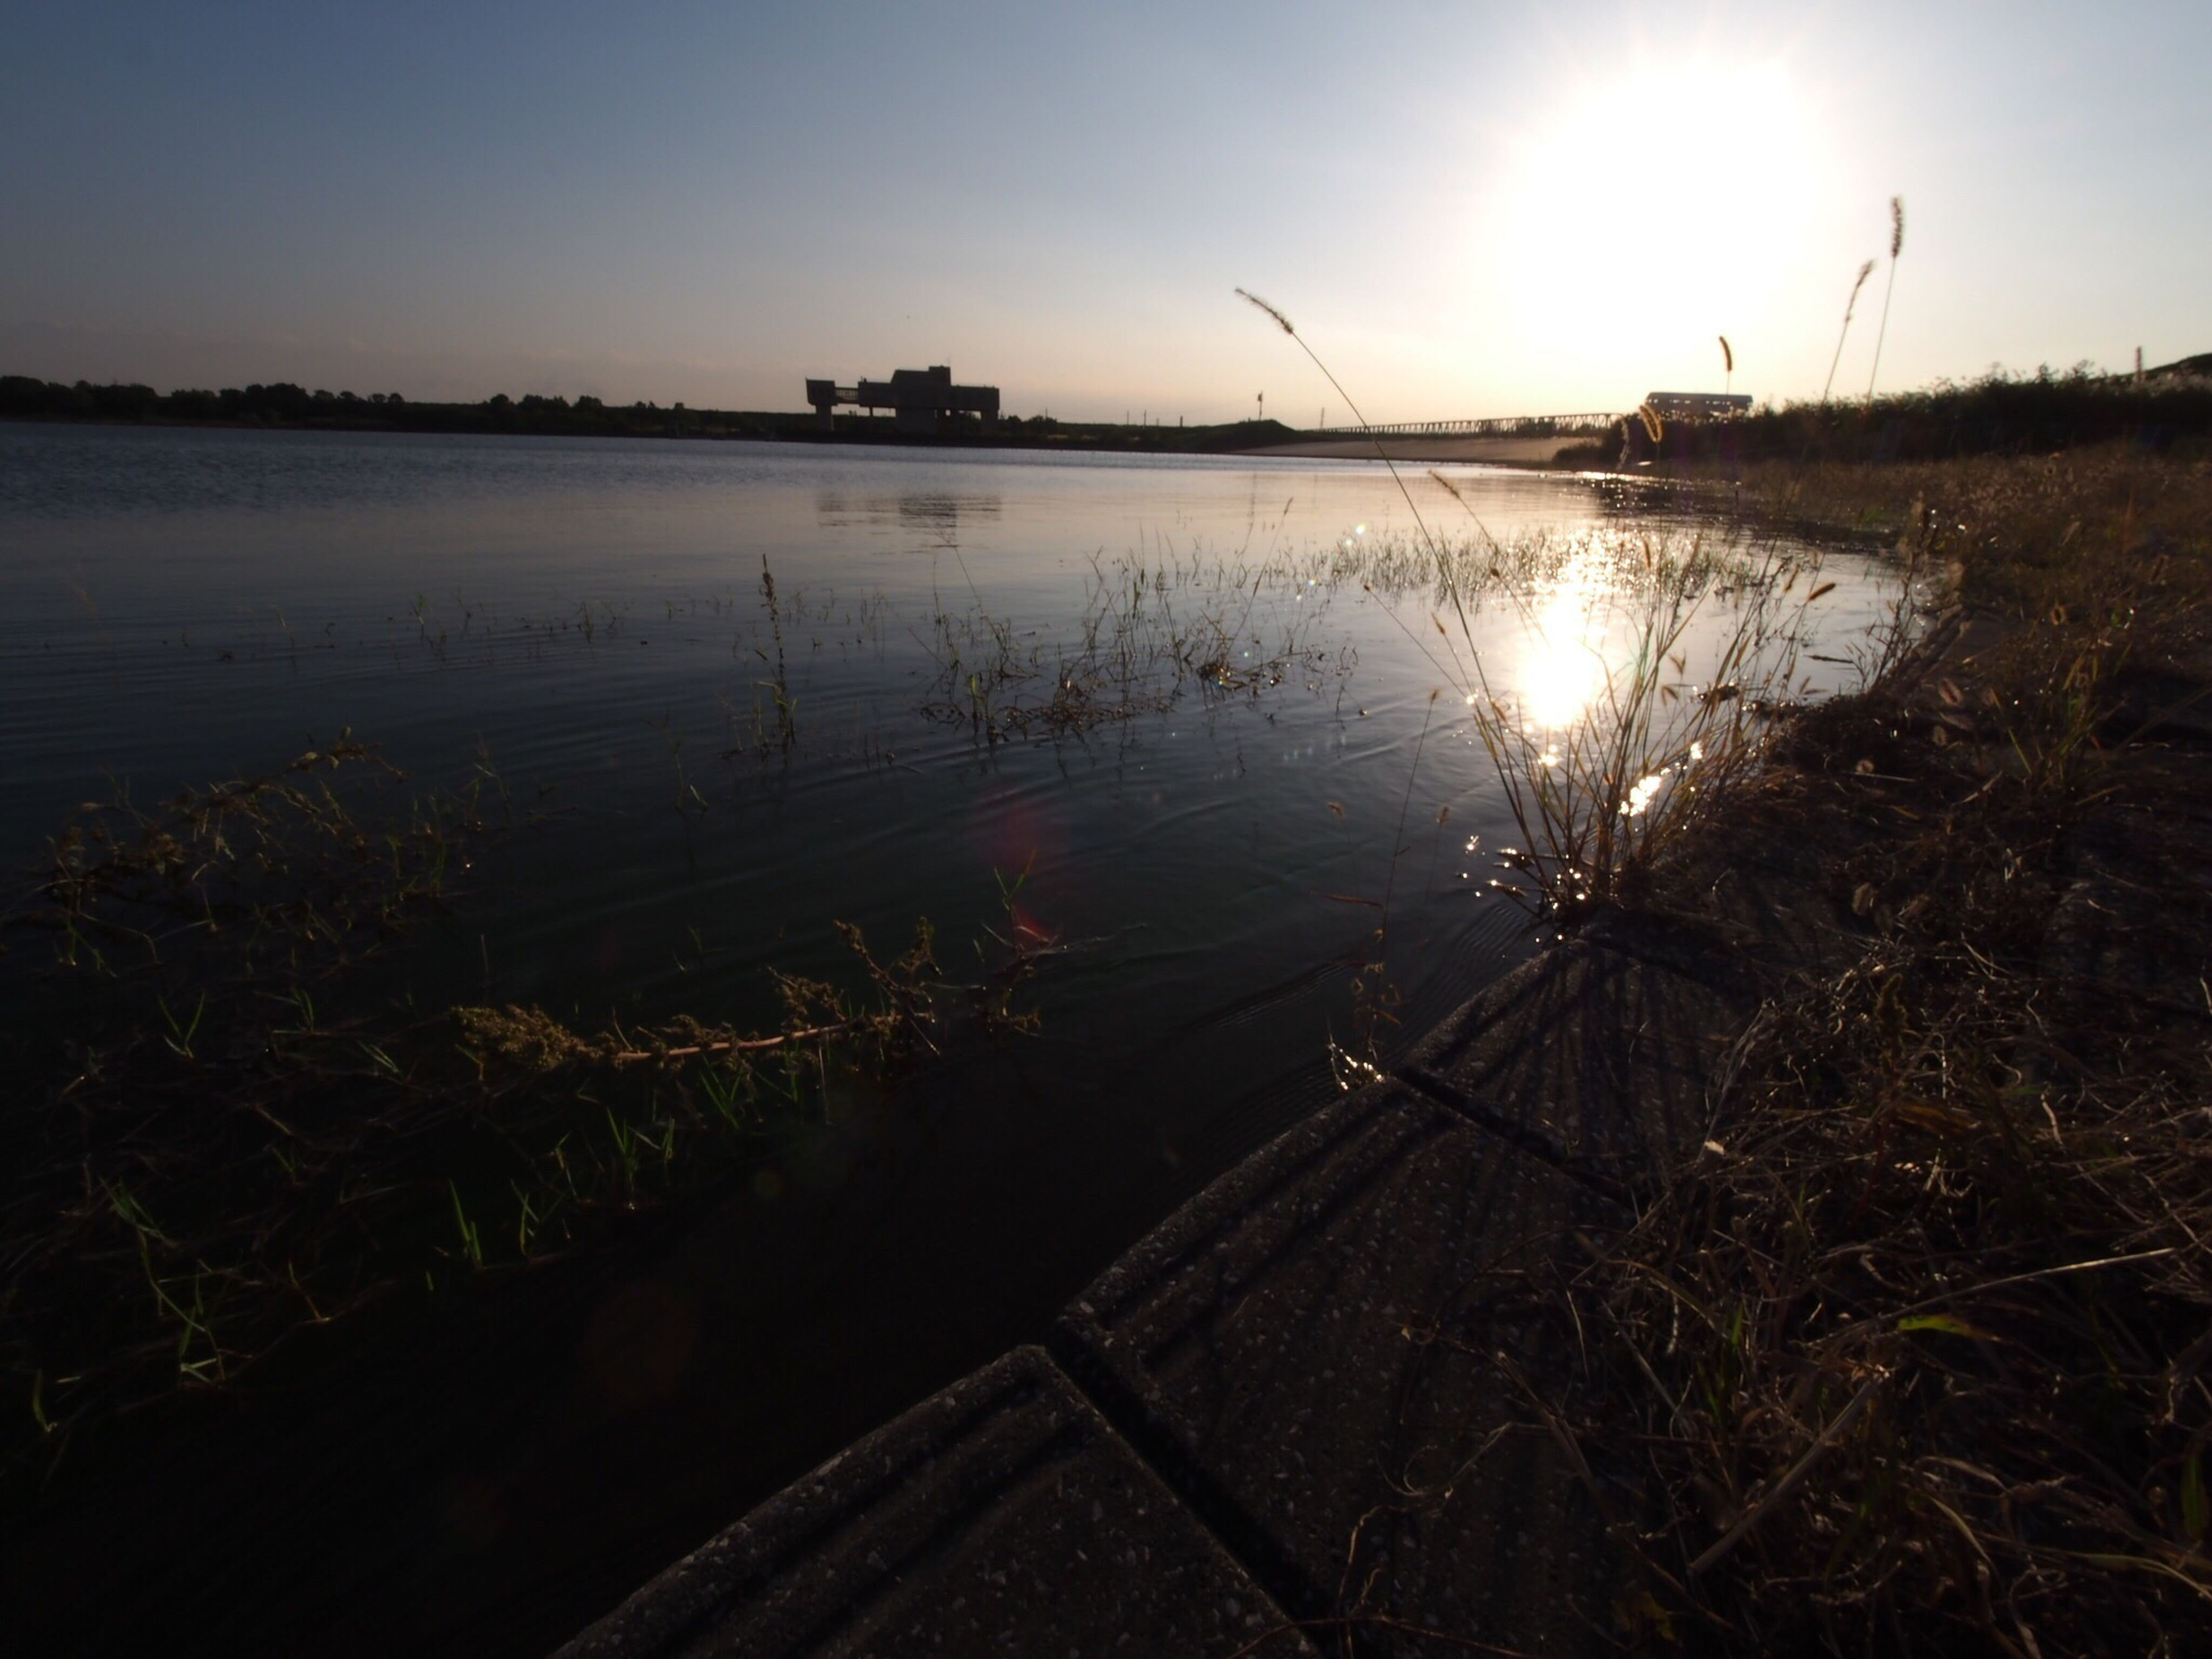 water, tranquil scene, scenics, tranquility, sunlight, sun, grass, plant, sunset, lake, reflection, reed - grass family, beauty in nature, nature, sunbeam, growth, idyllic, sky, non-urban scene, majestic, outdoors, calm, summer, day, lens flare, distant, remote, water surface